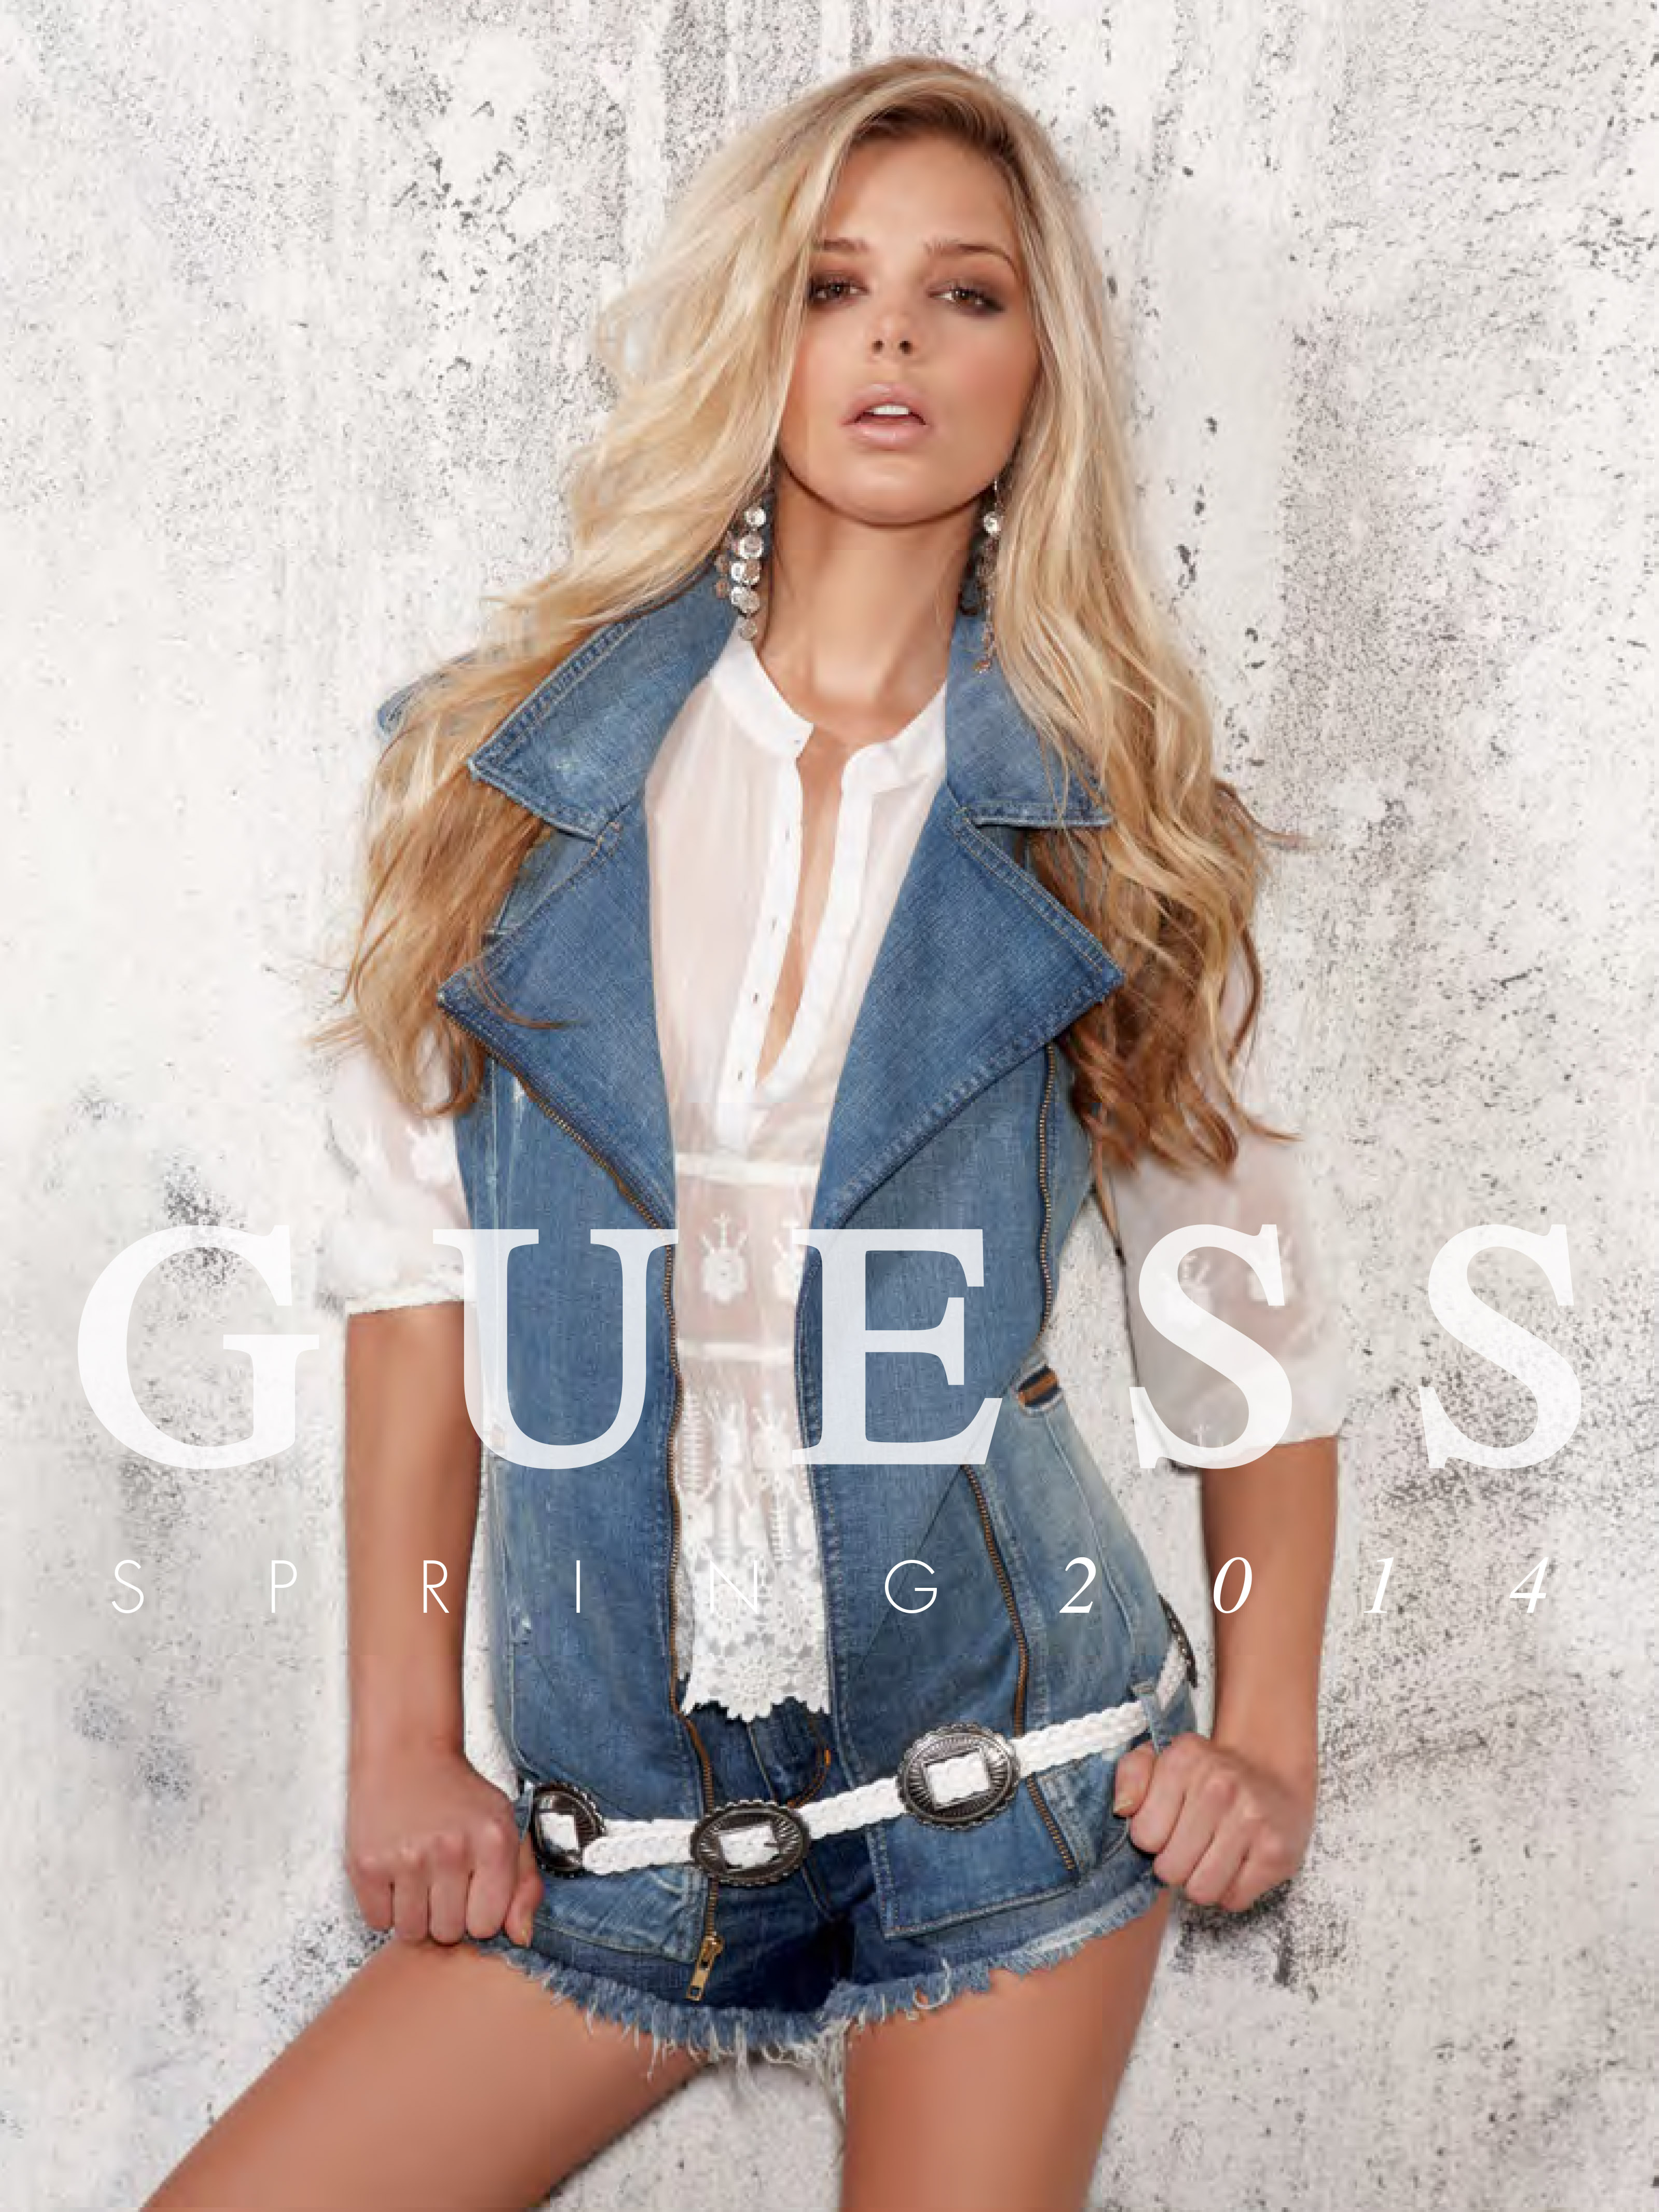 Guess Spring Collection Sexy as Ever with Canuck Model ...